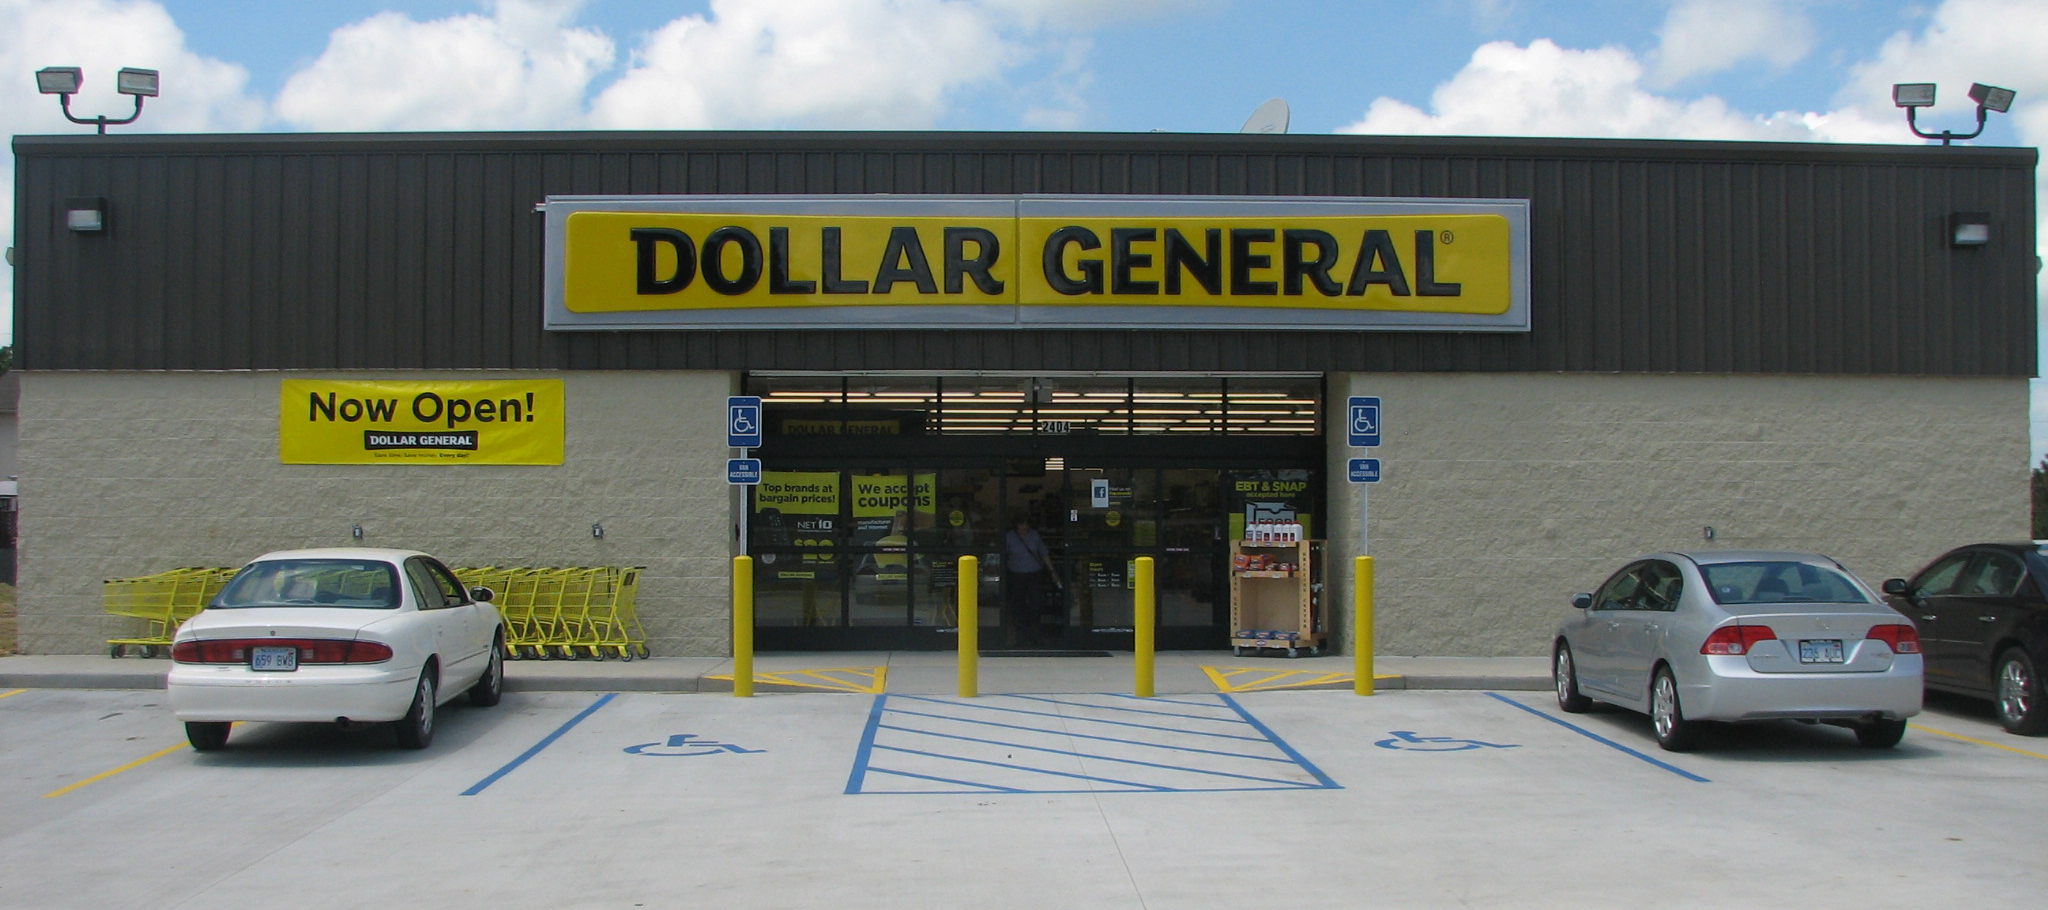 My Father's Business: The Small-Town Values That Built Dollar General into a Billion-Dollar Company [Cal Turner, Rob Simbeck] on newlightish.tk *FREE* shipping on qualifying offers. The first-person account of the family that changed the American retail landscape that Dave Ramsey calls a must-read. Longtime Dollar General CEO.